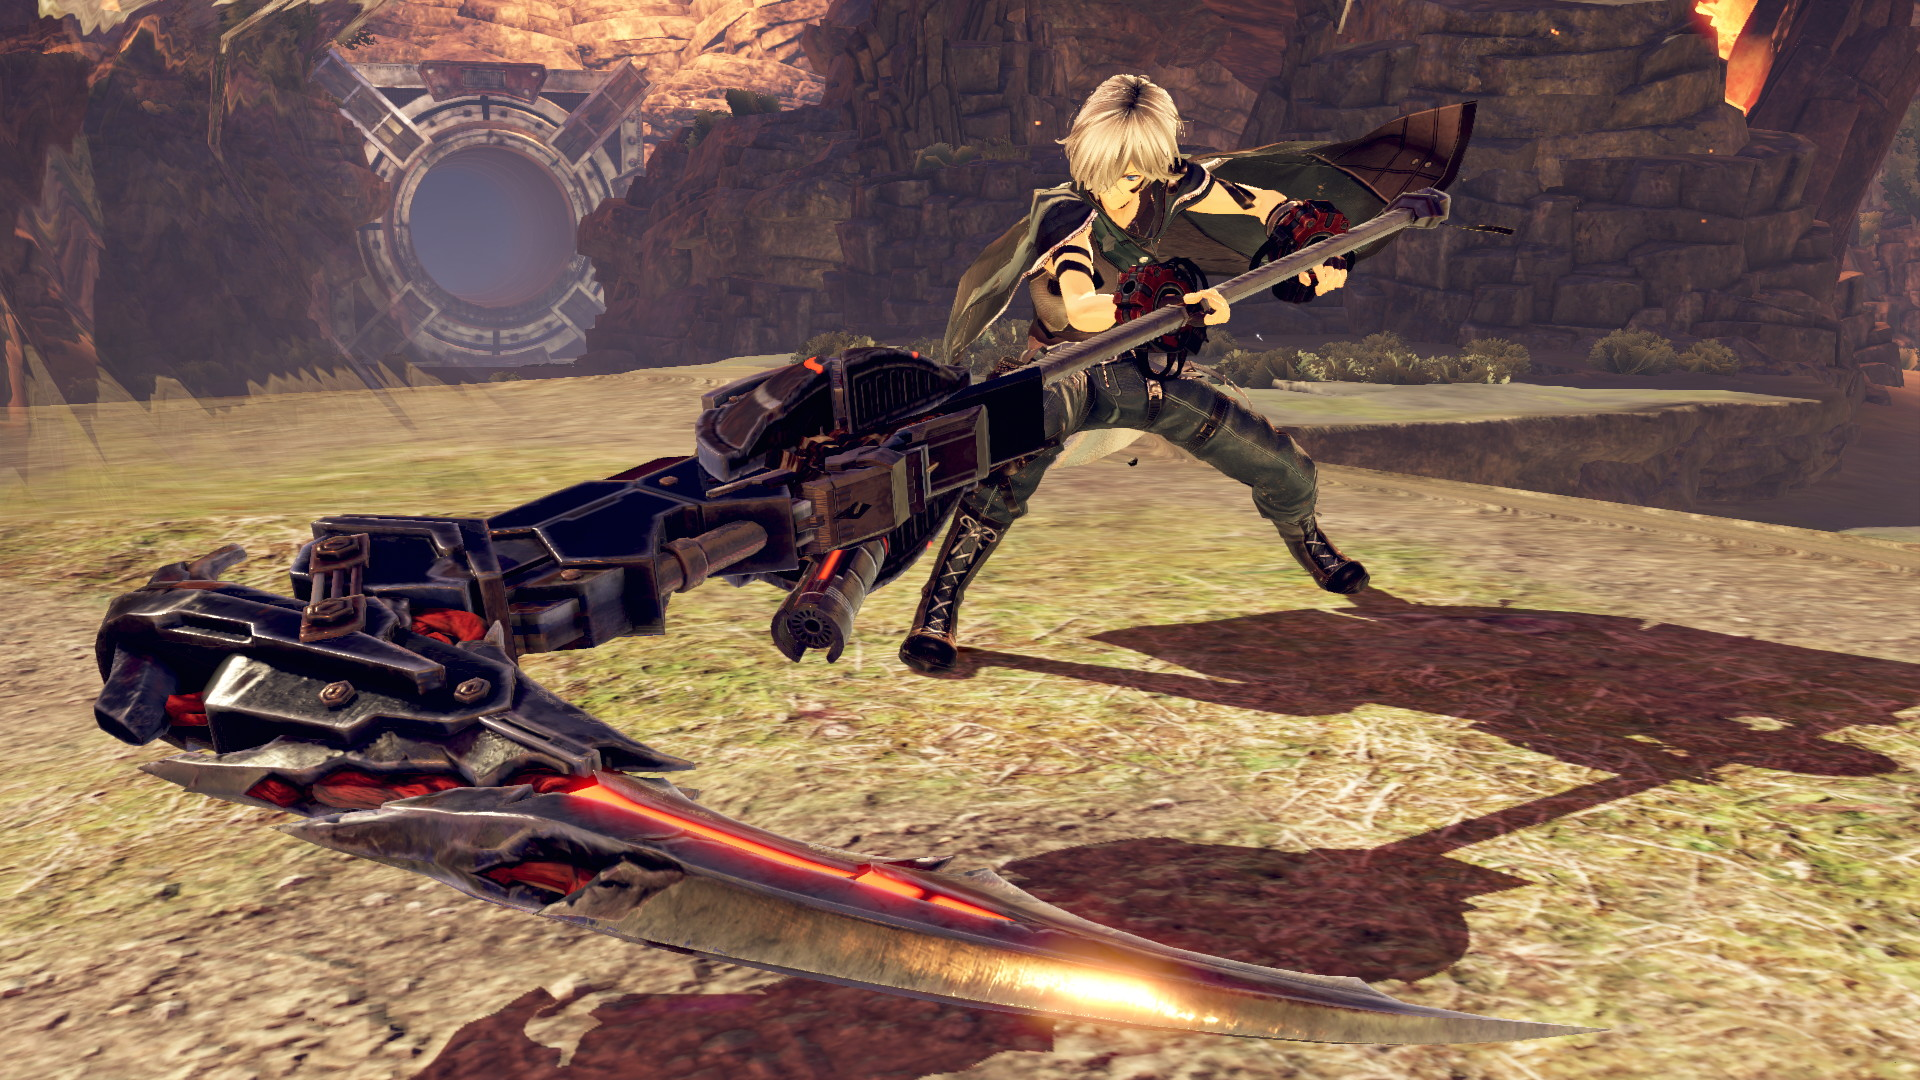 God Eater 3 - screenshot 6